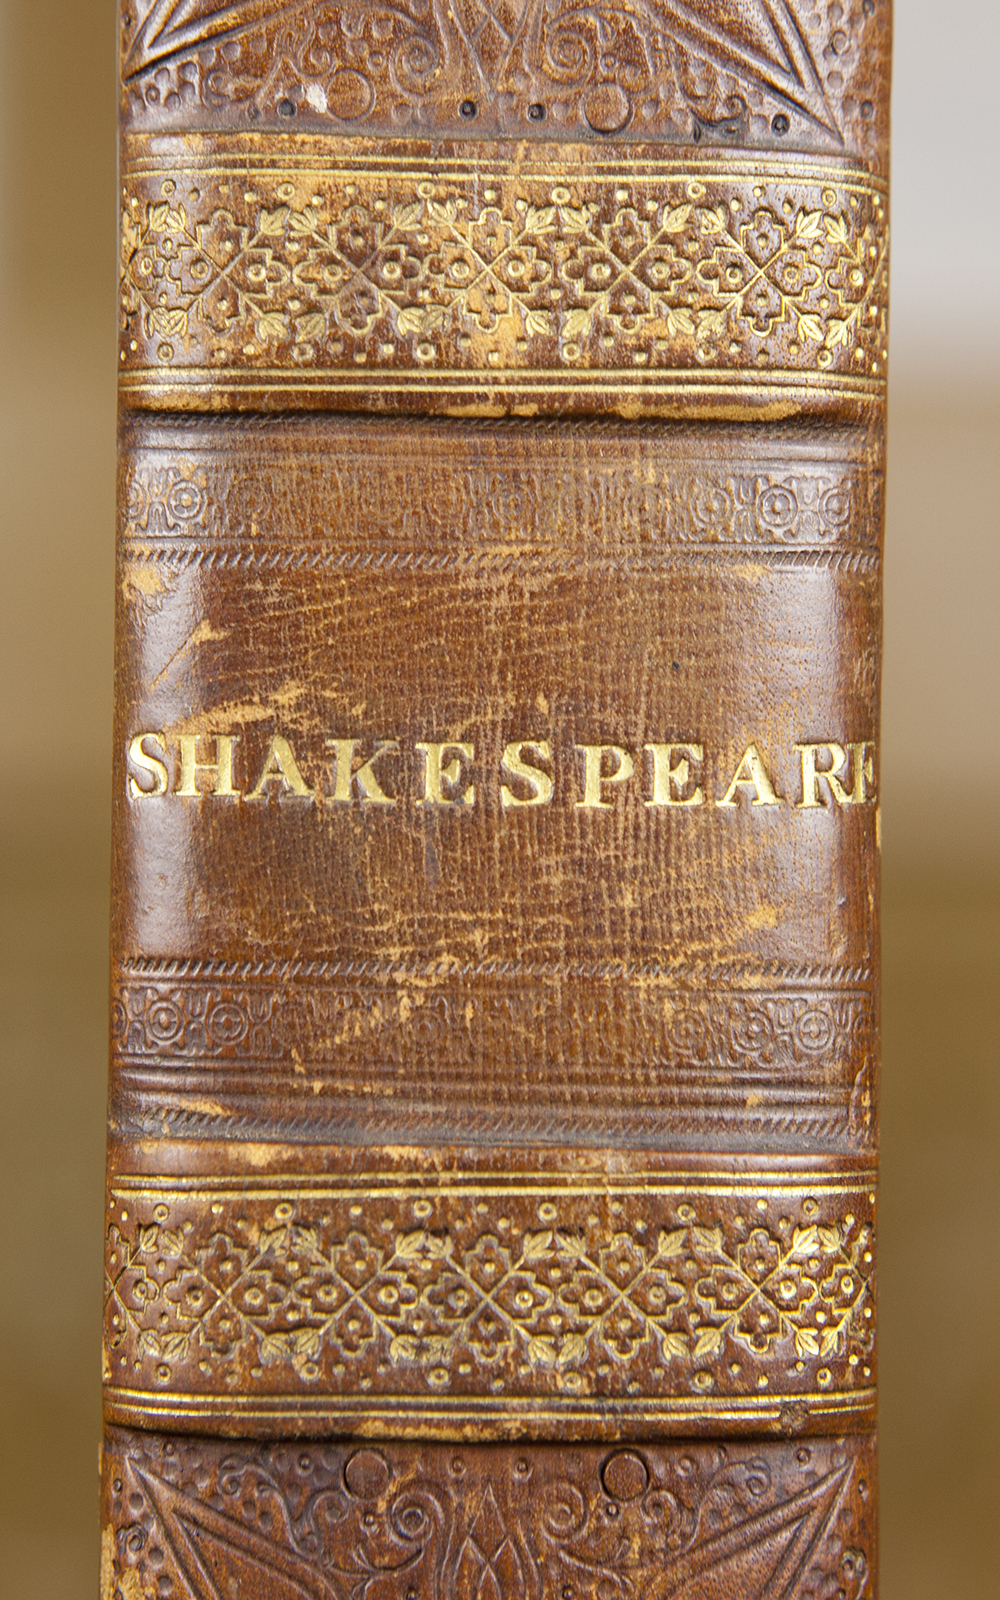 The brown spine of a book shows the word Shakespeare